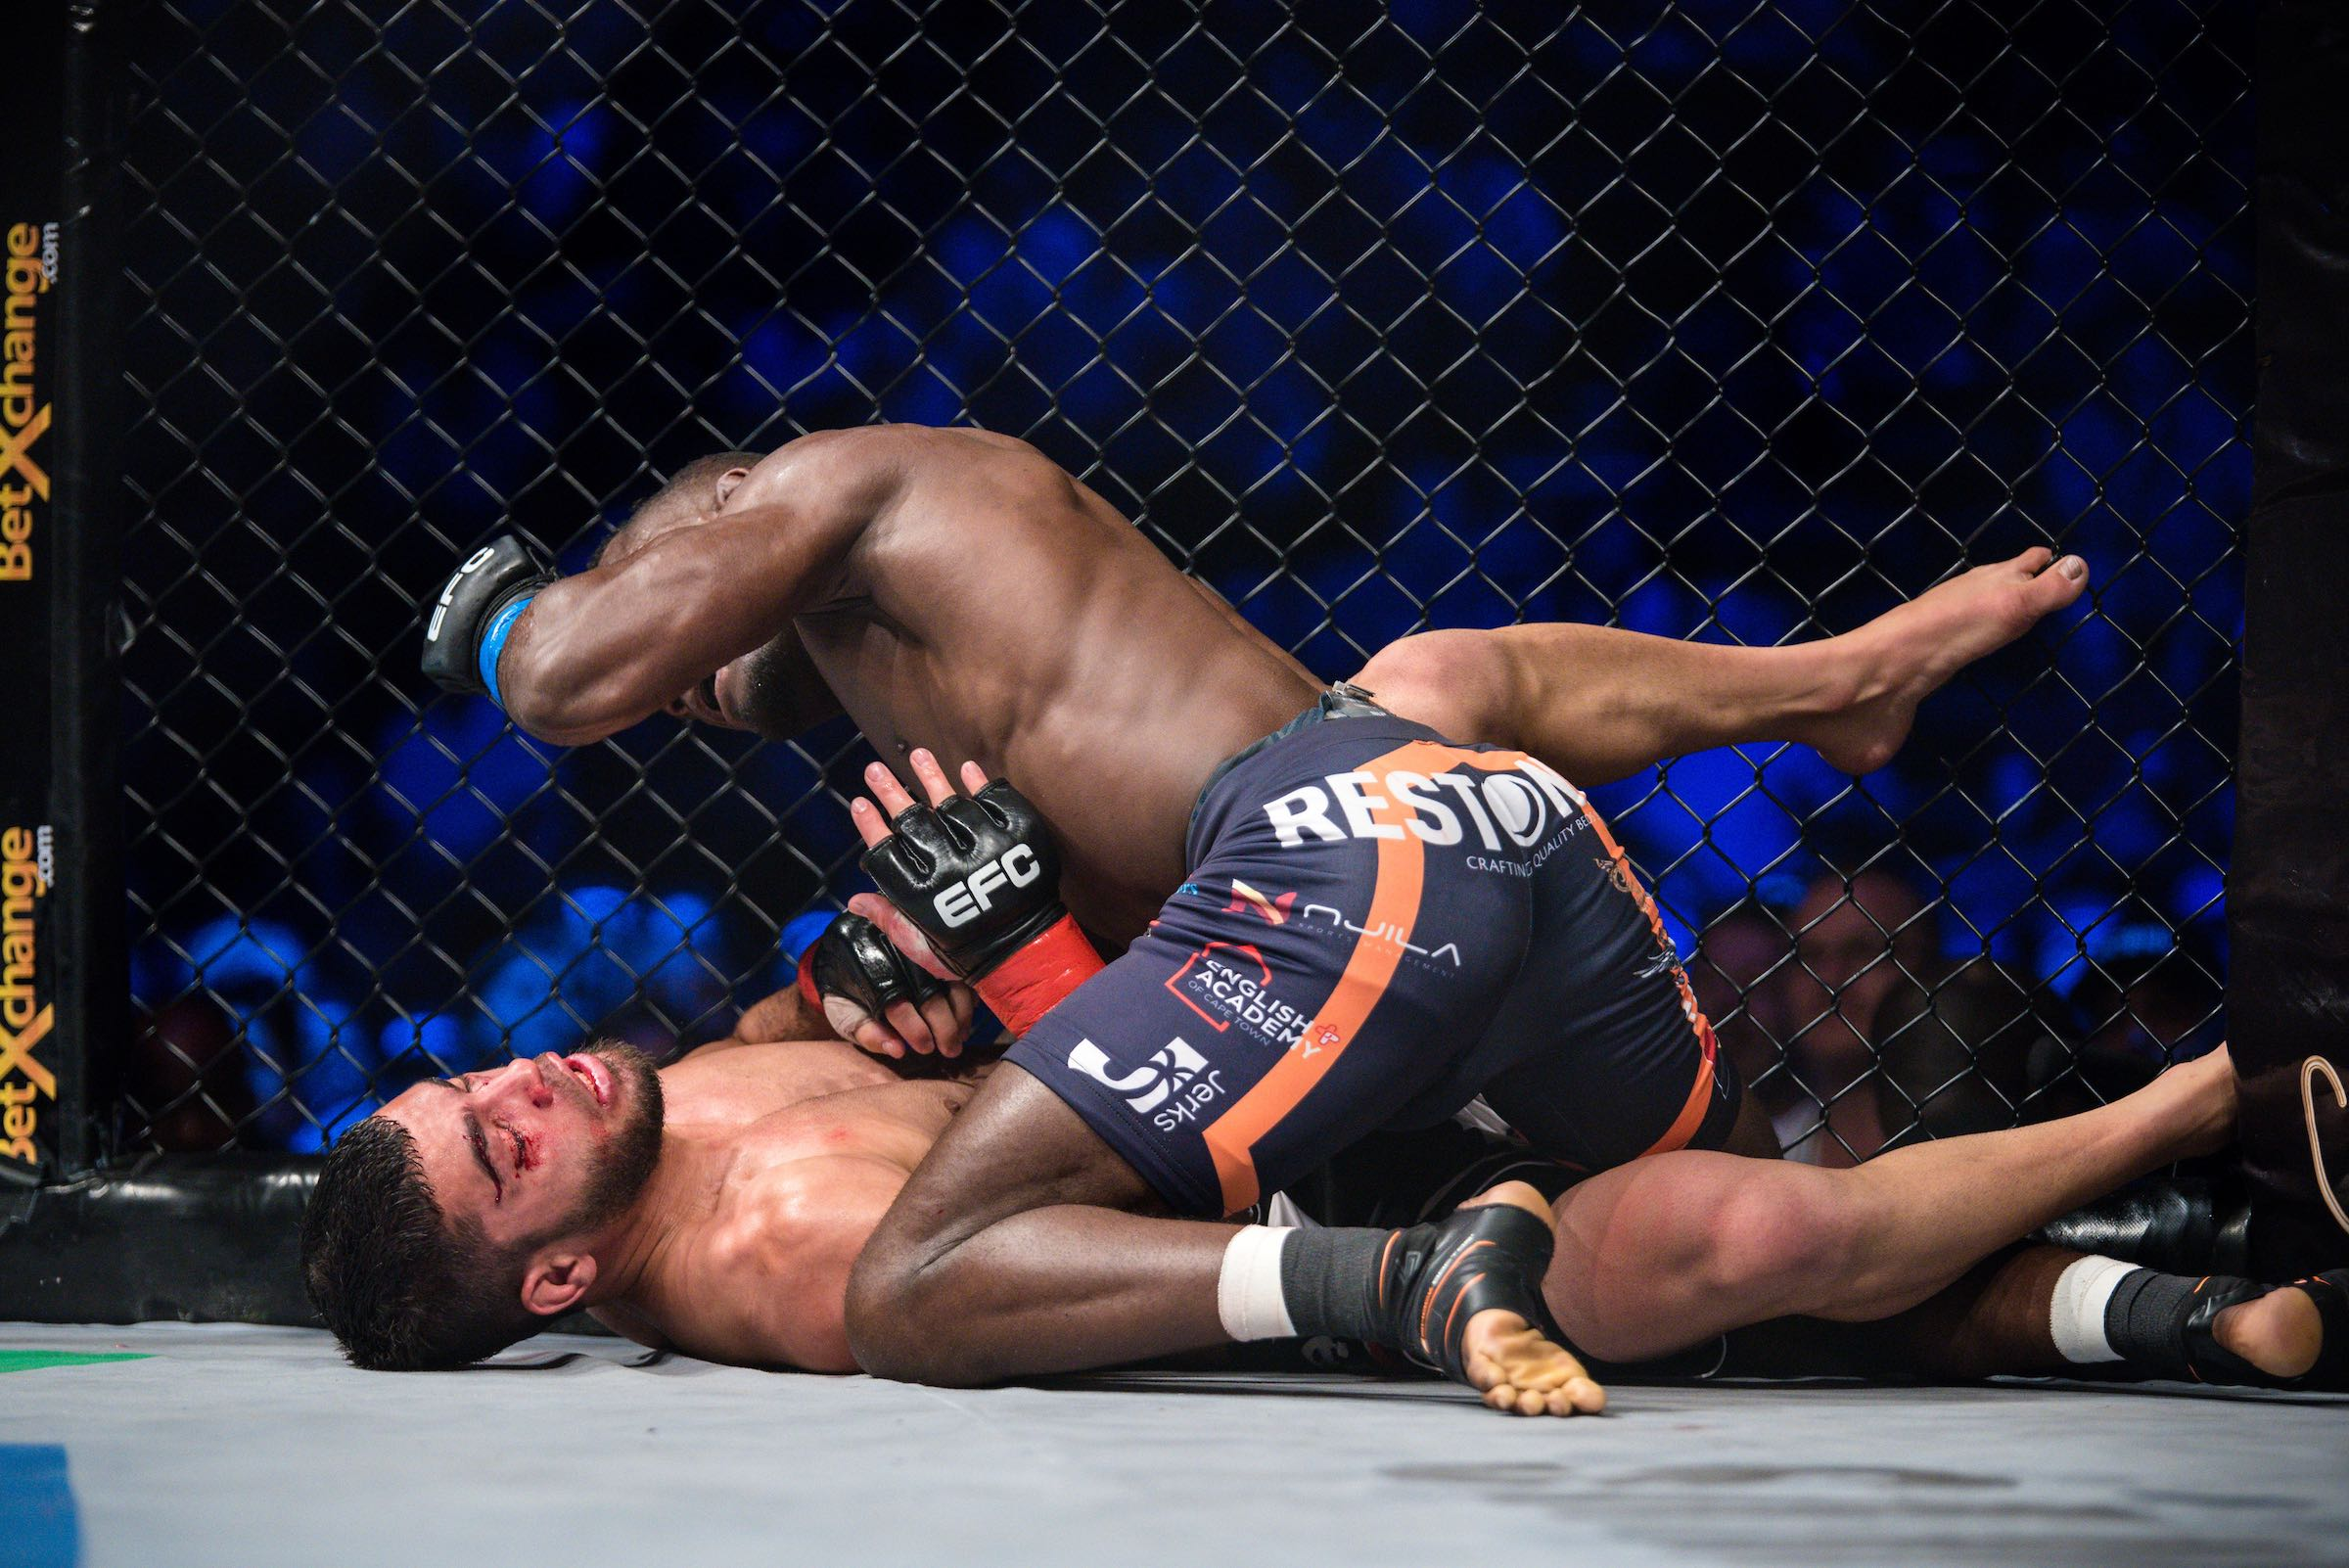 MMA action at its best at EFC 66 in Time Square, Pretoria